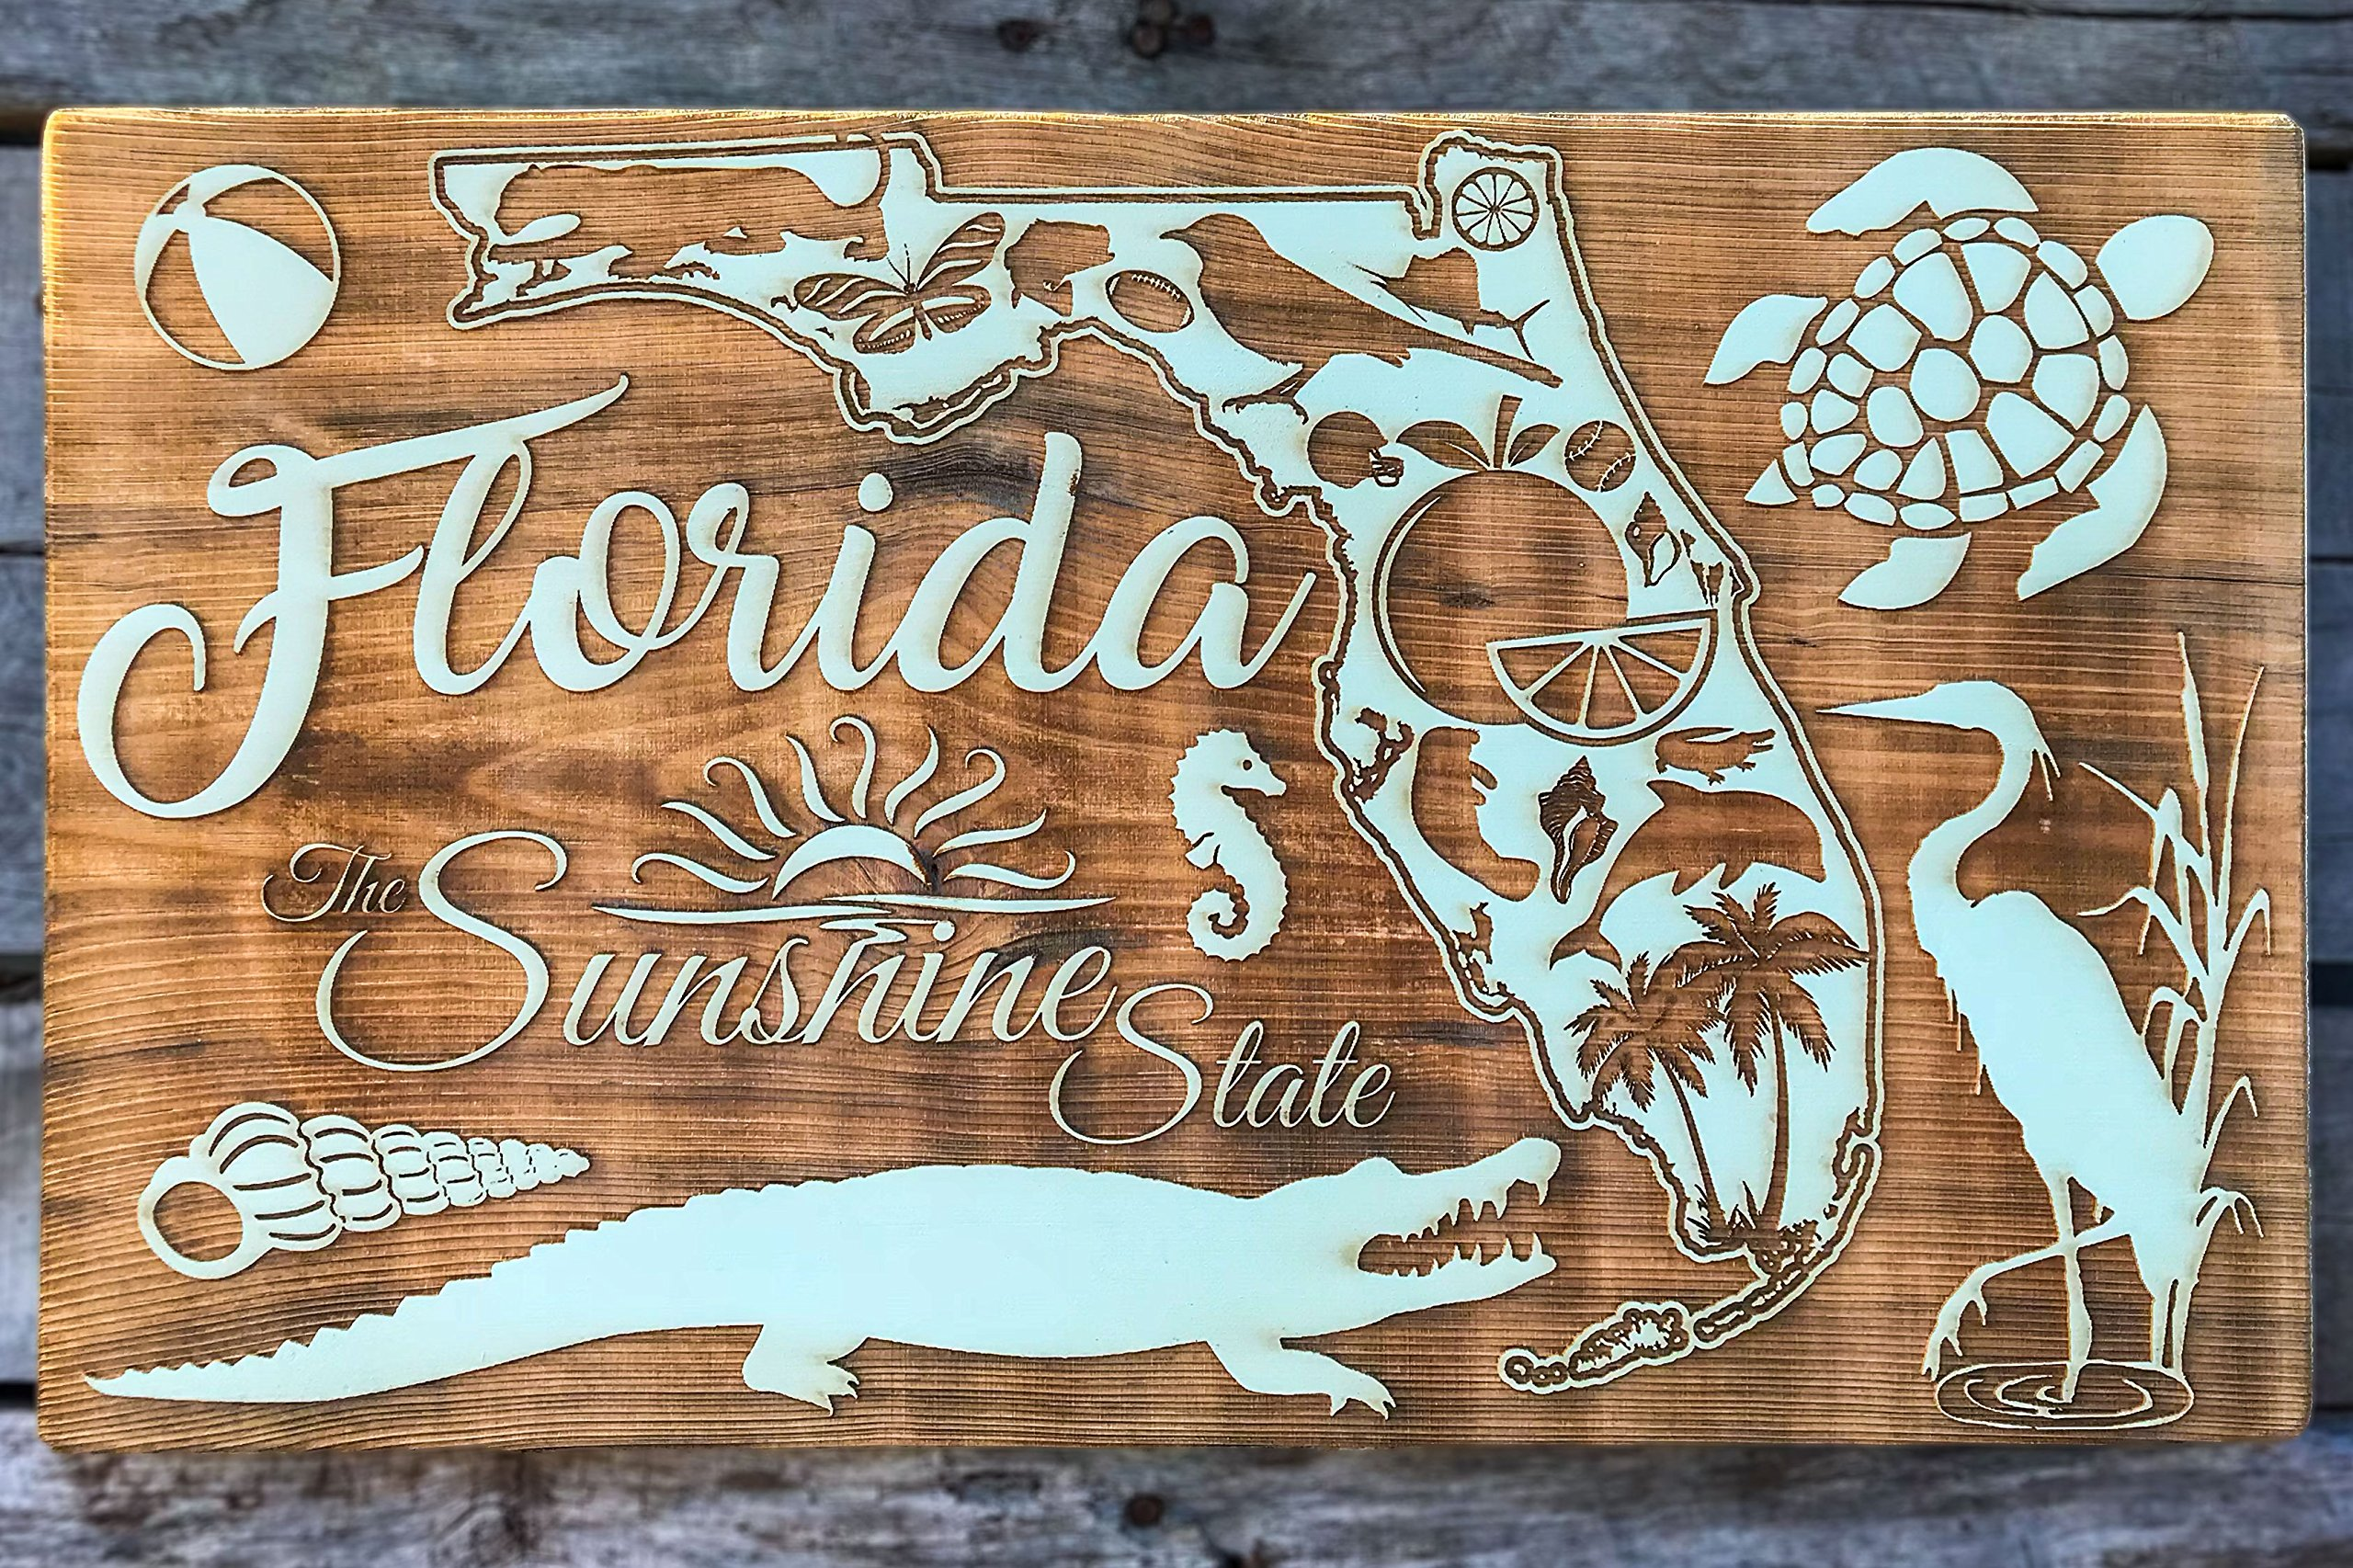 State of Florida Abstract wood engraved map